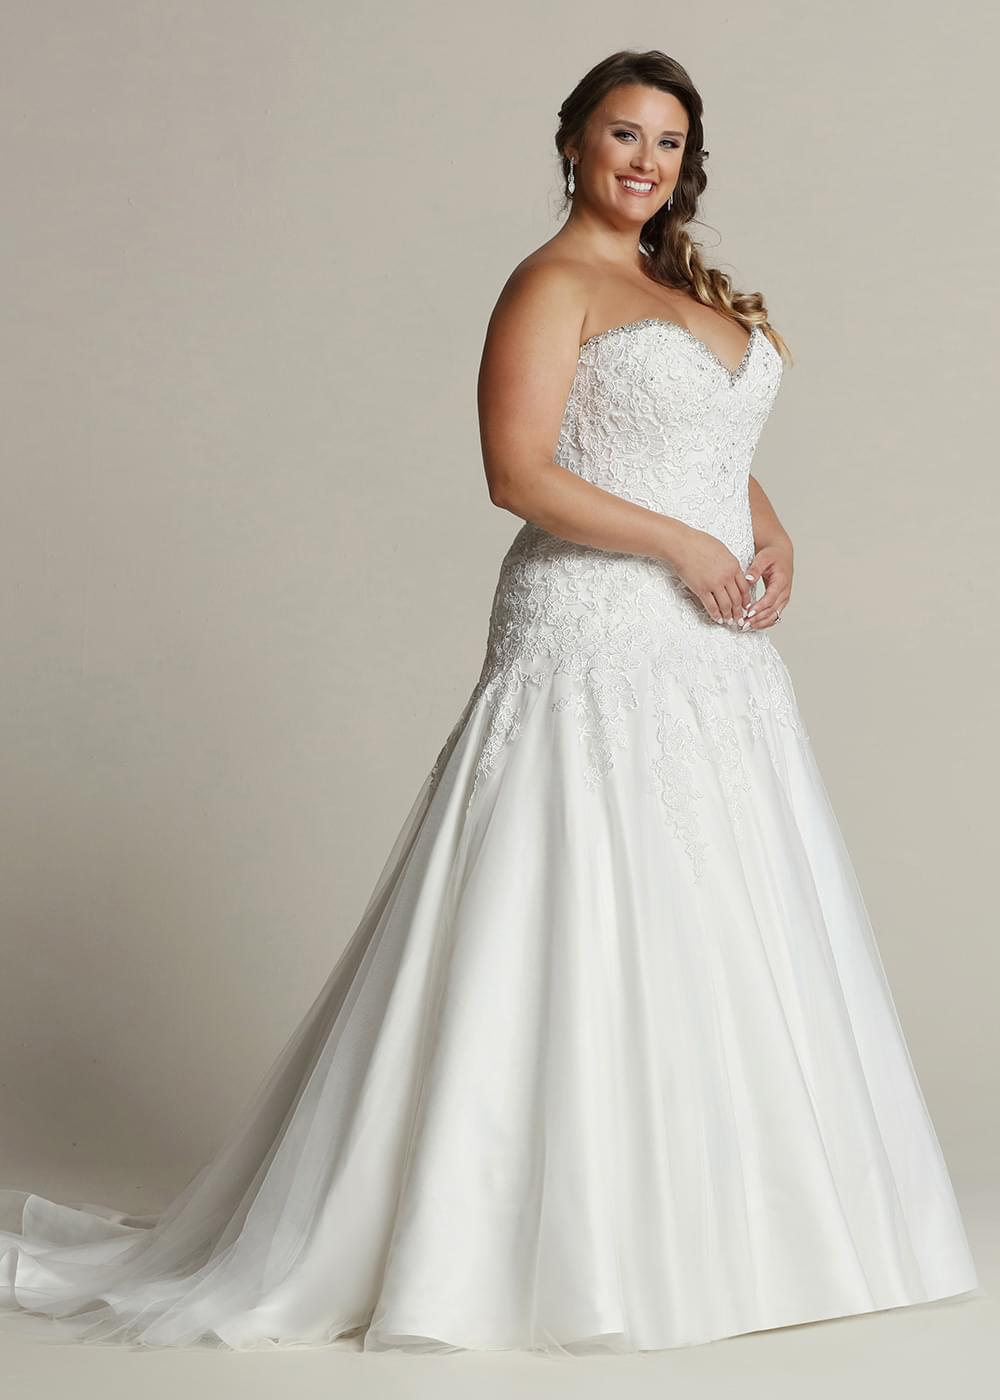 TH-Madeline TH Wedding Dresses By Ashdon